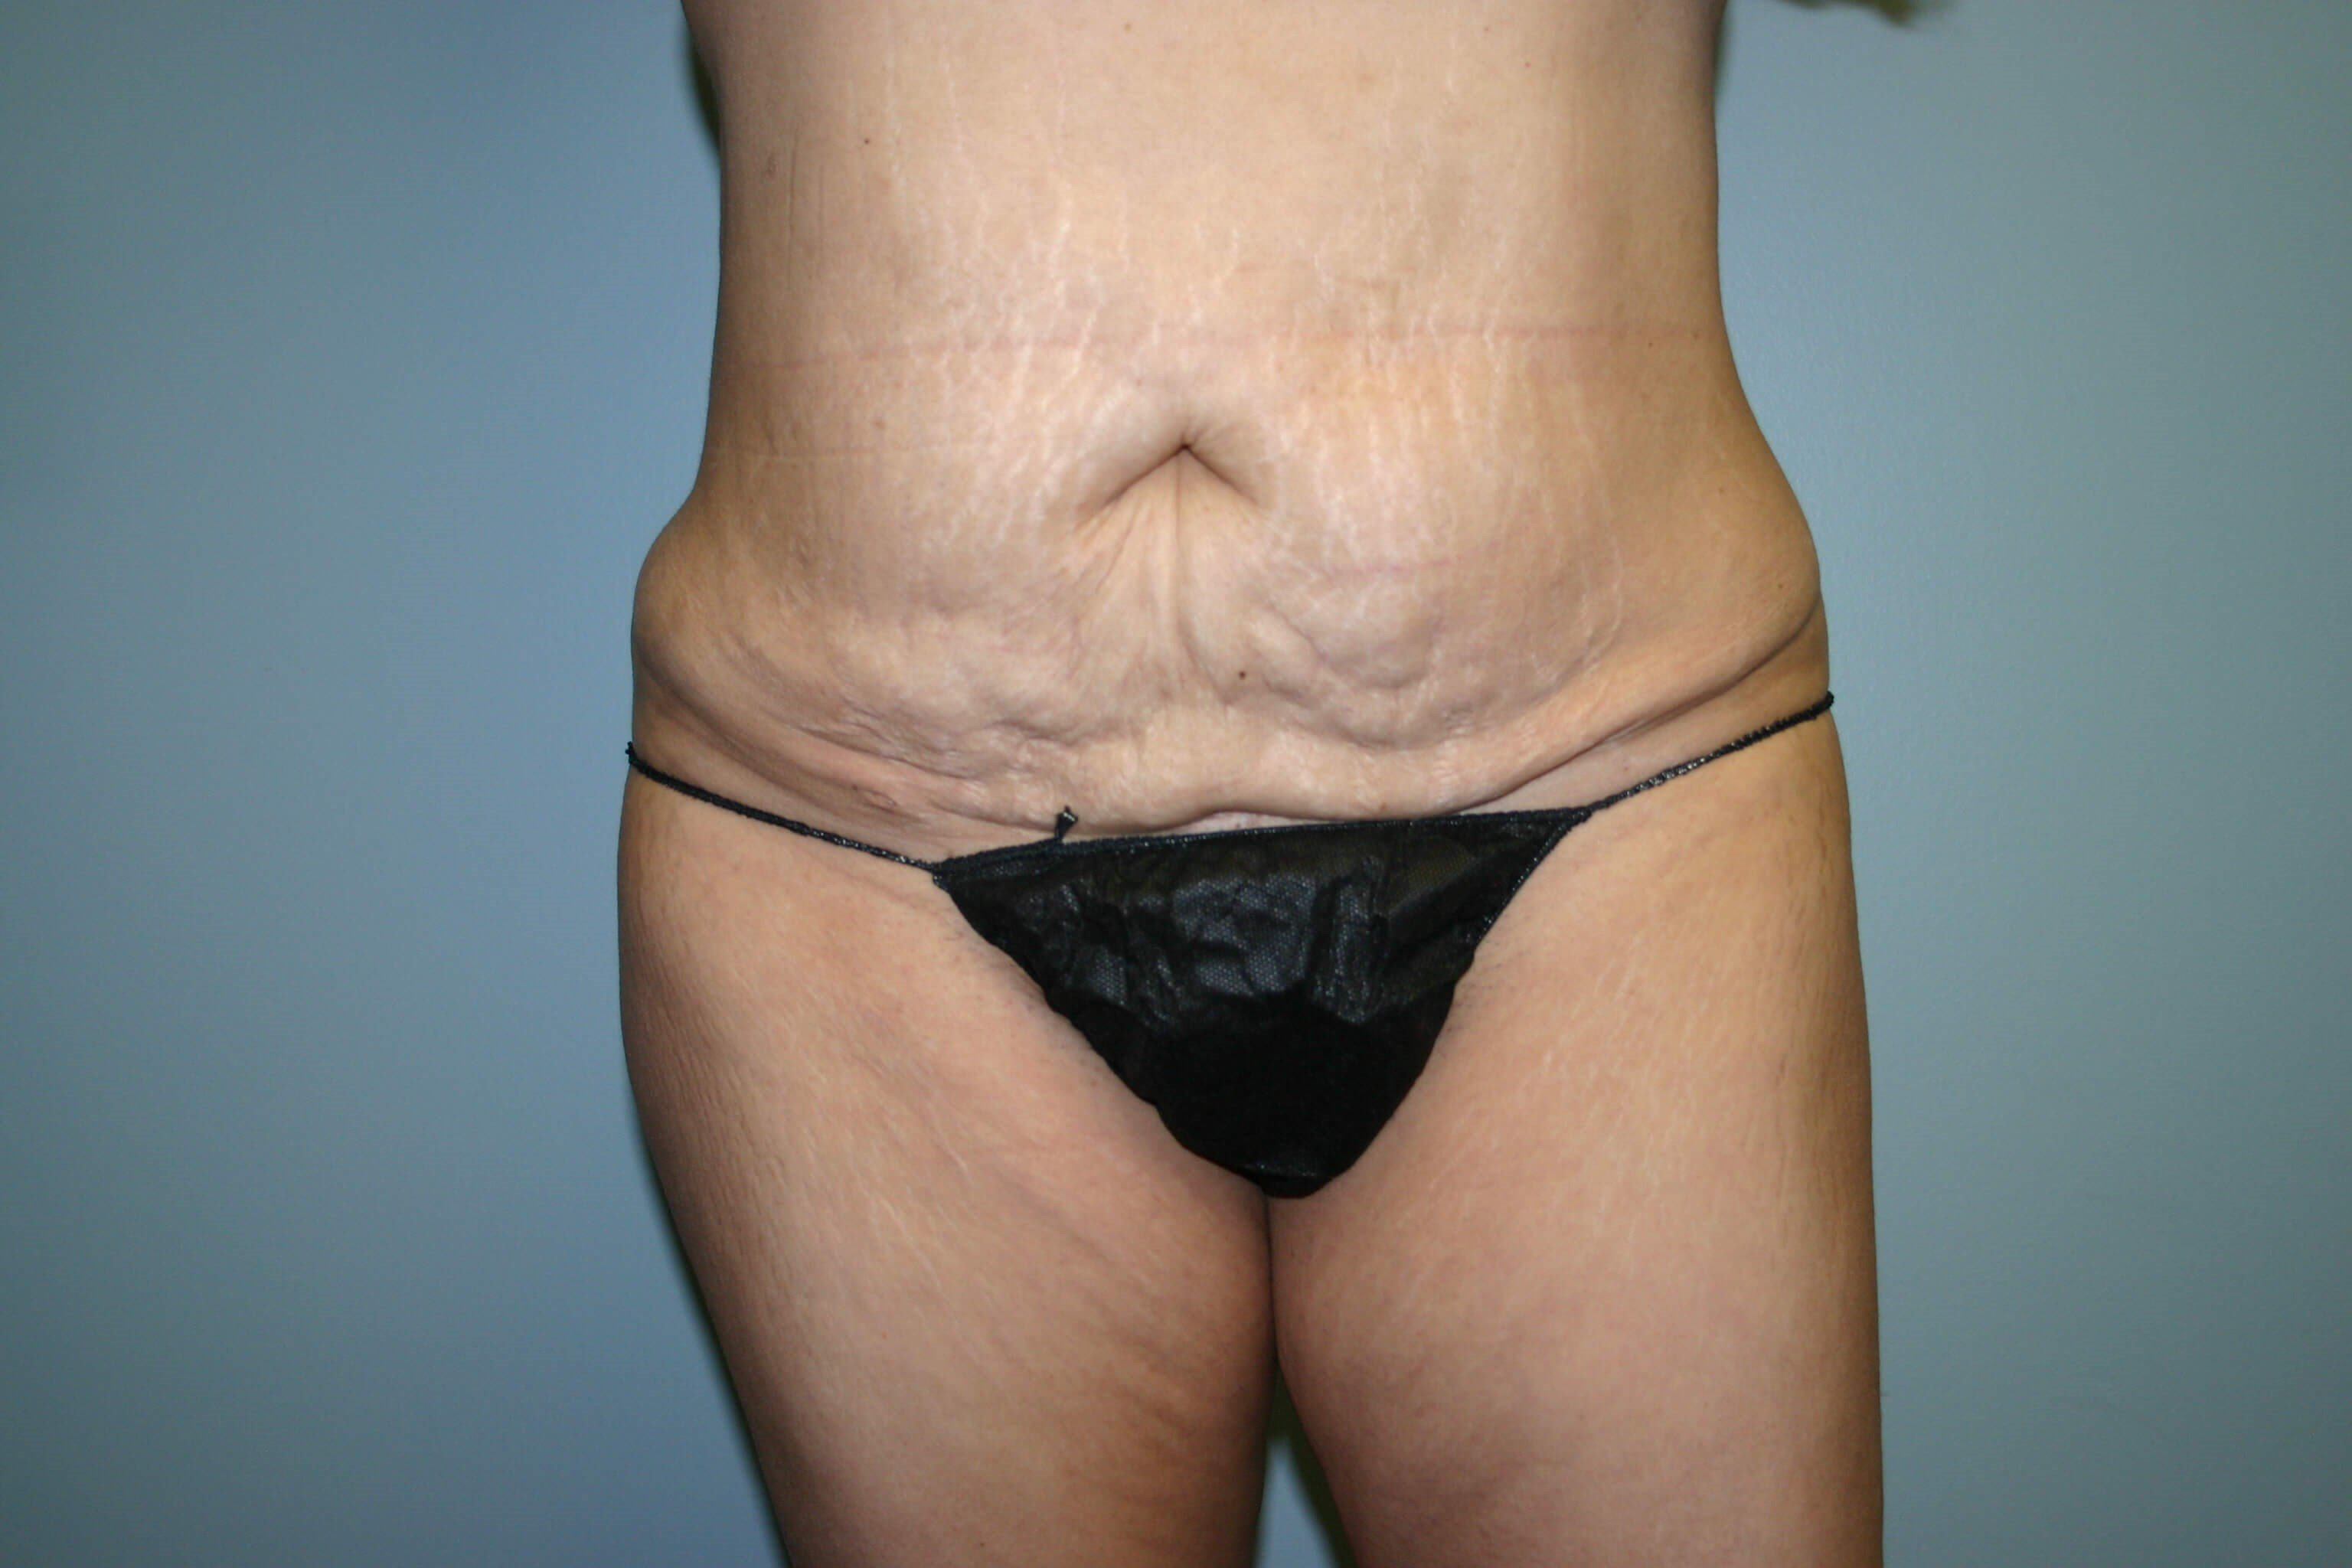 Pre-operative Tummy Tuck Before